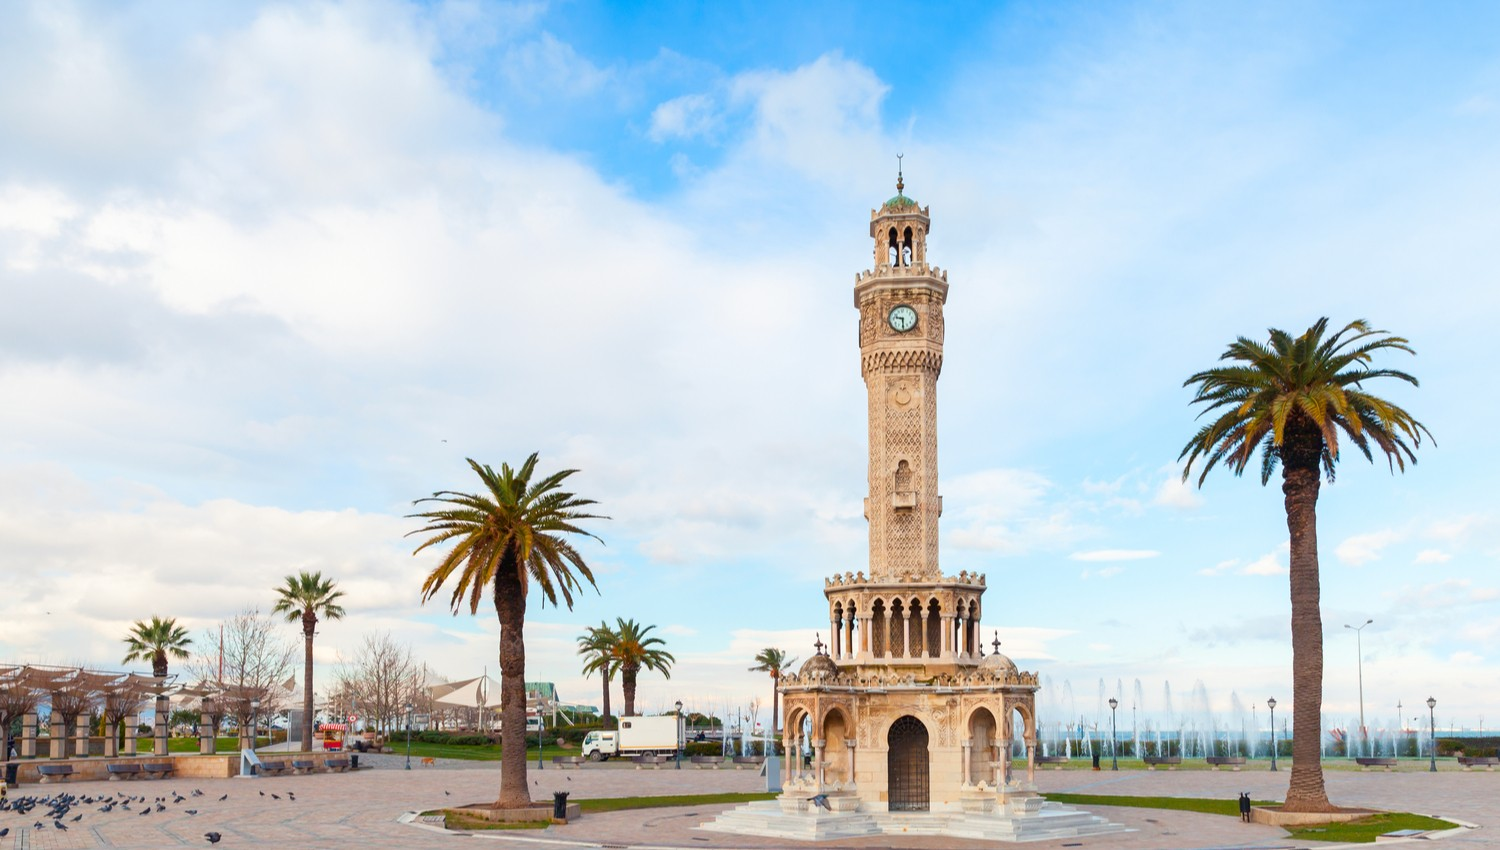 izmir konak clock tower